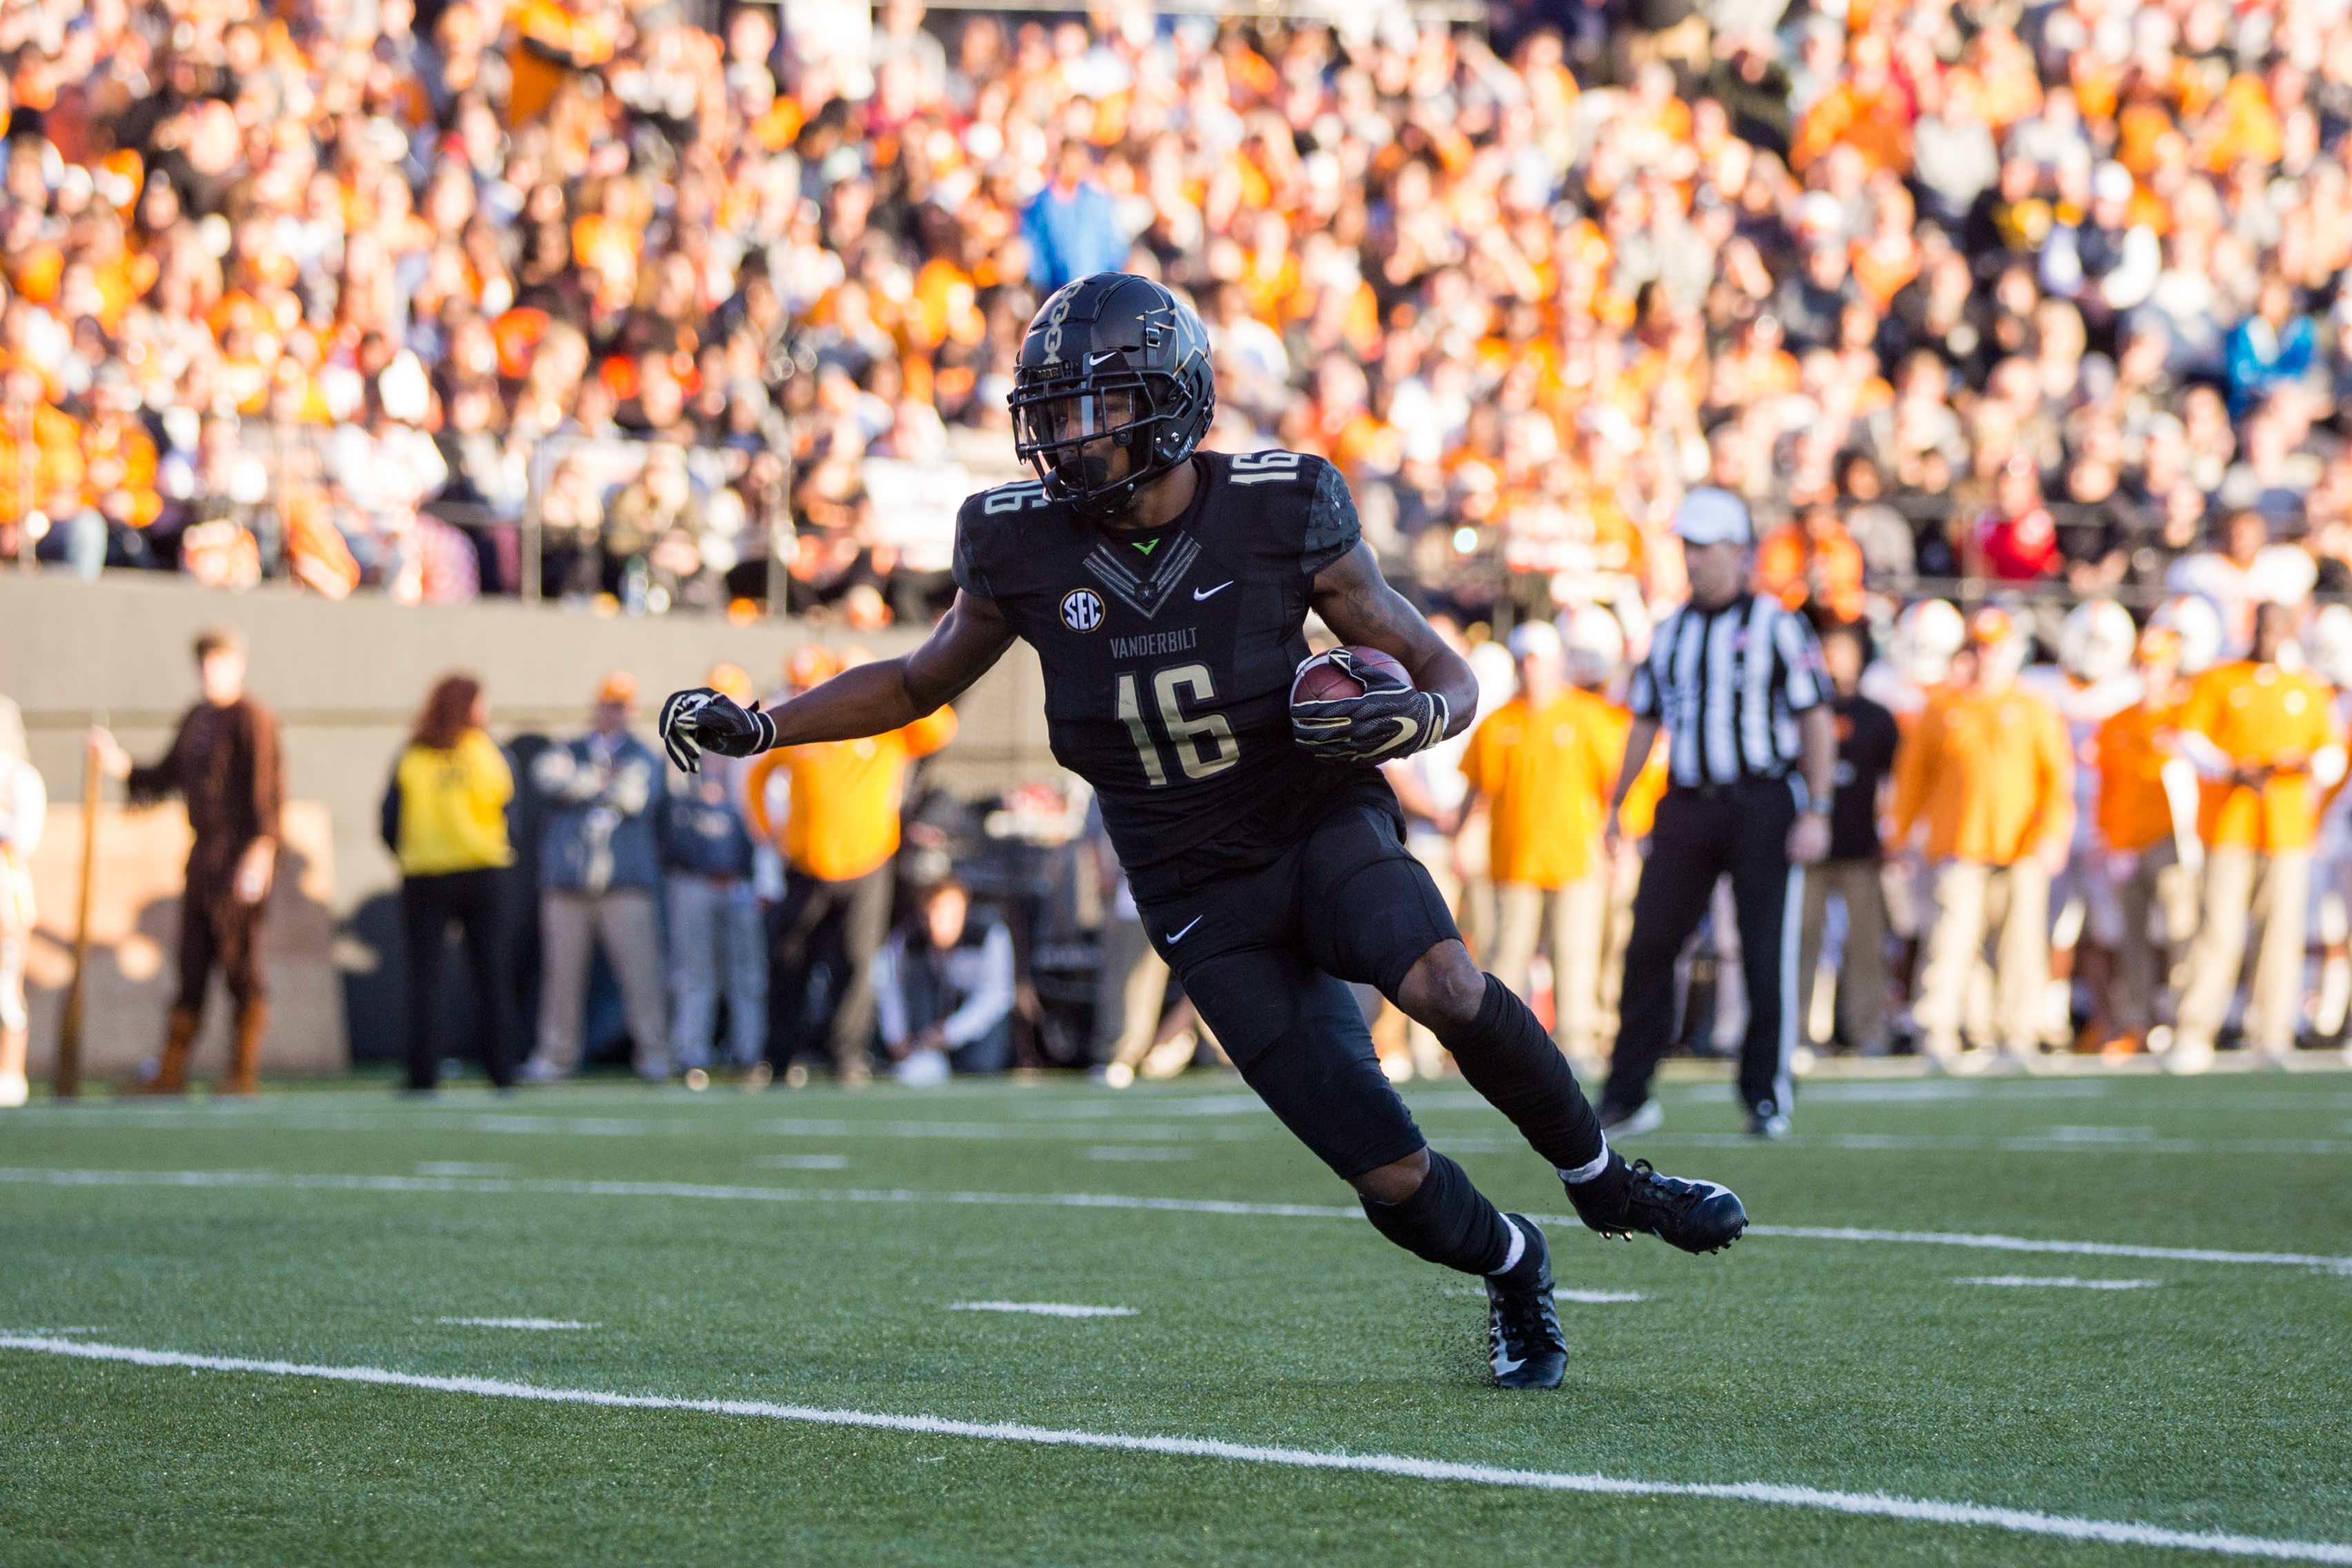 Three Matchups to Watch: Vanderbilt vs. Baylor